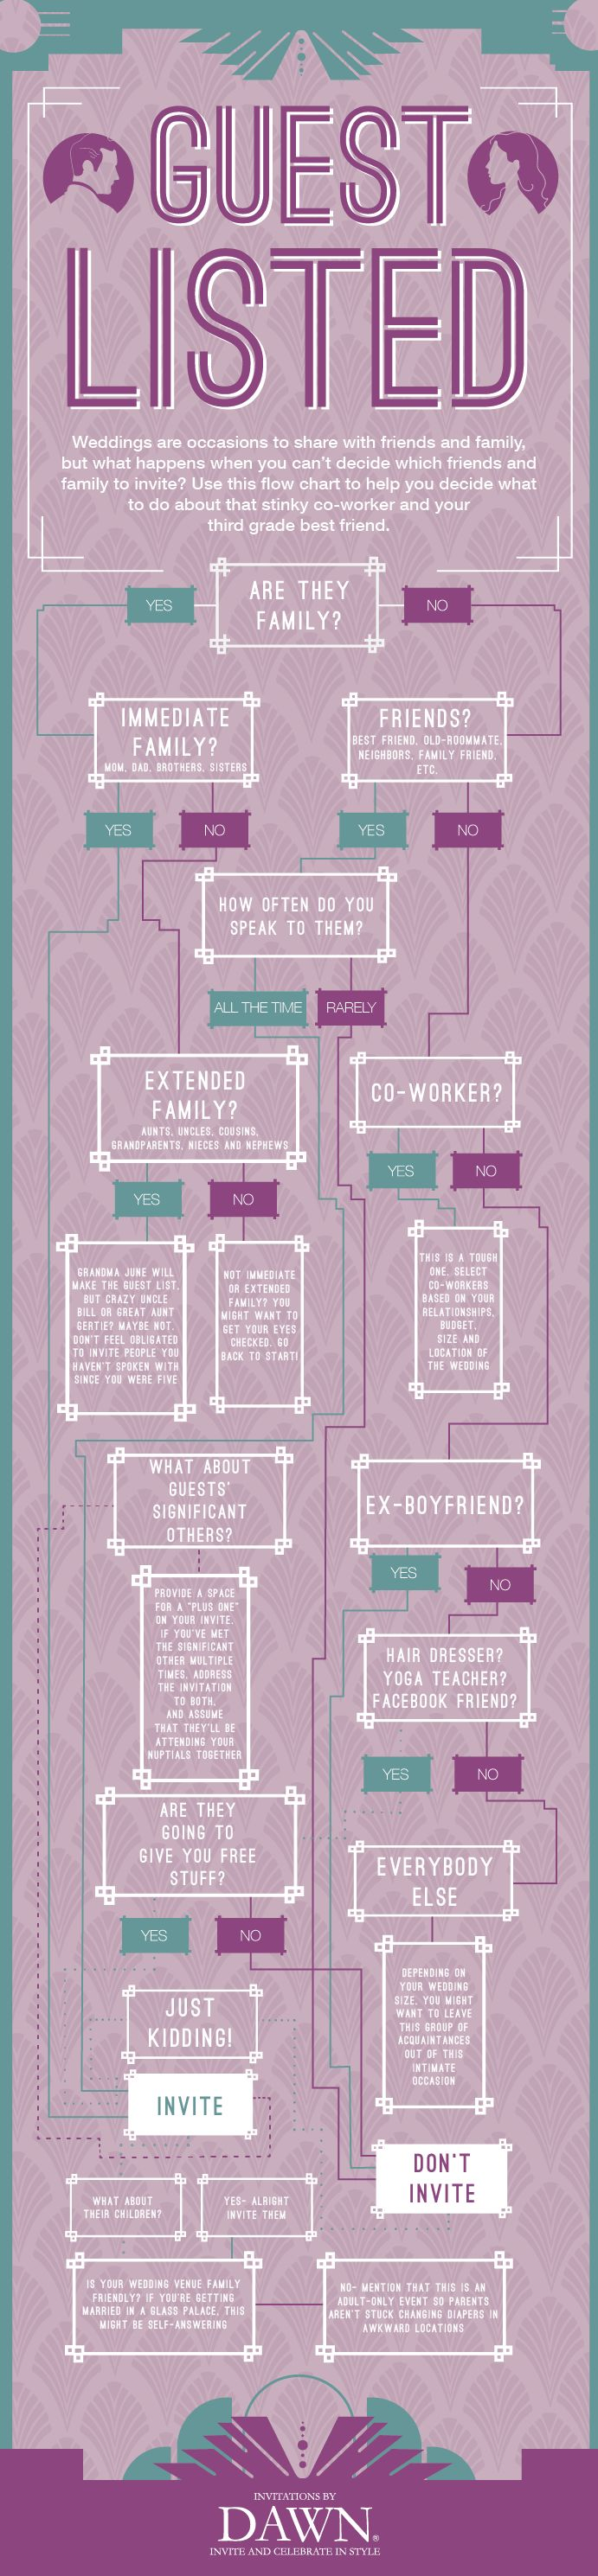 Who to invite to the wedding flow chart #silverlandjewelry #wedding